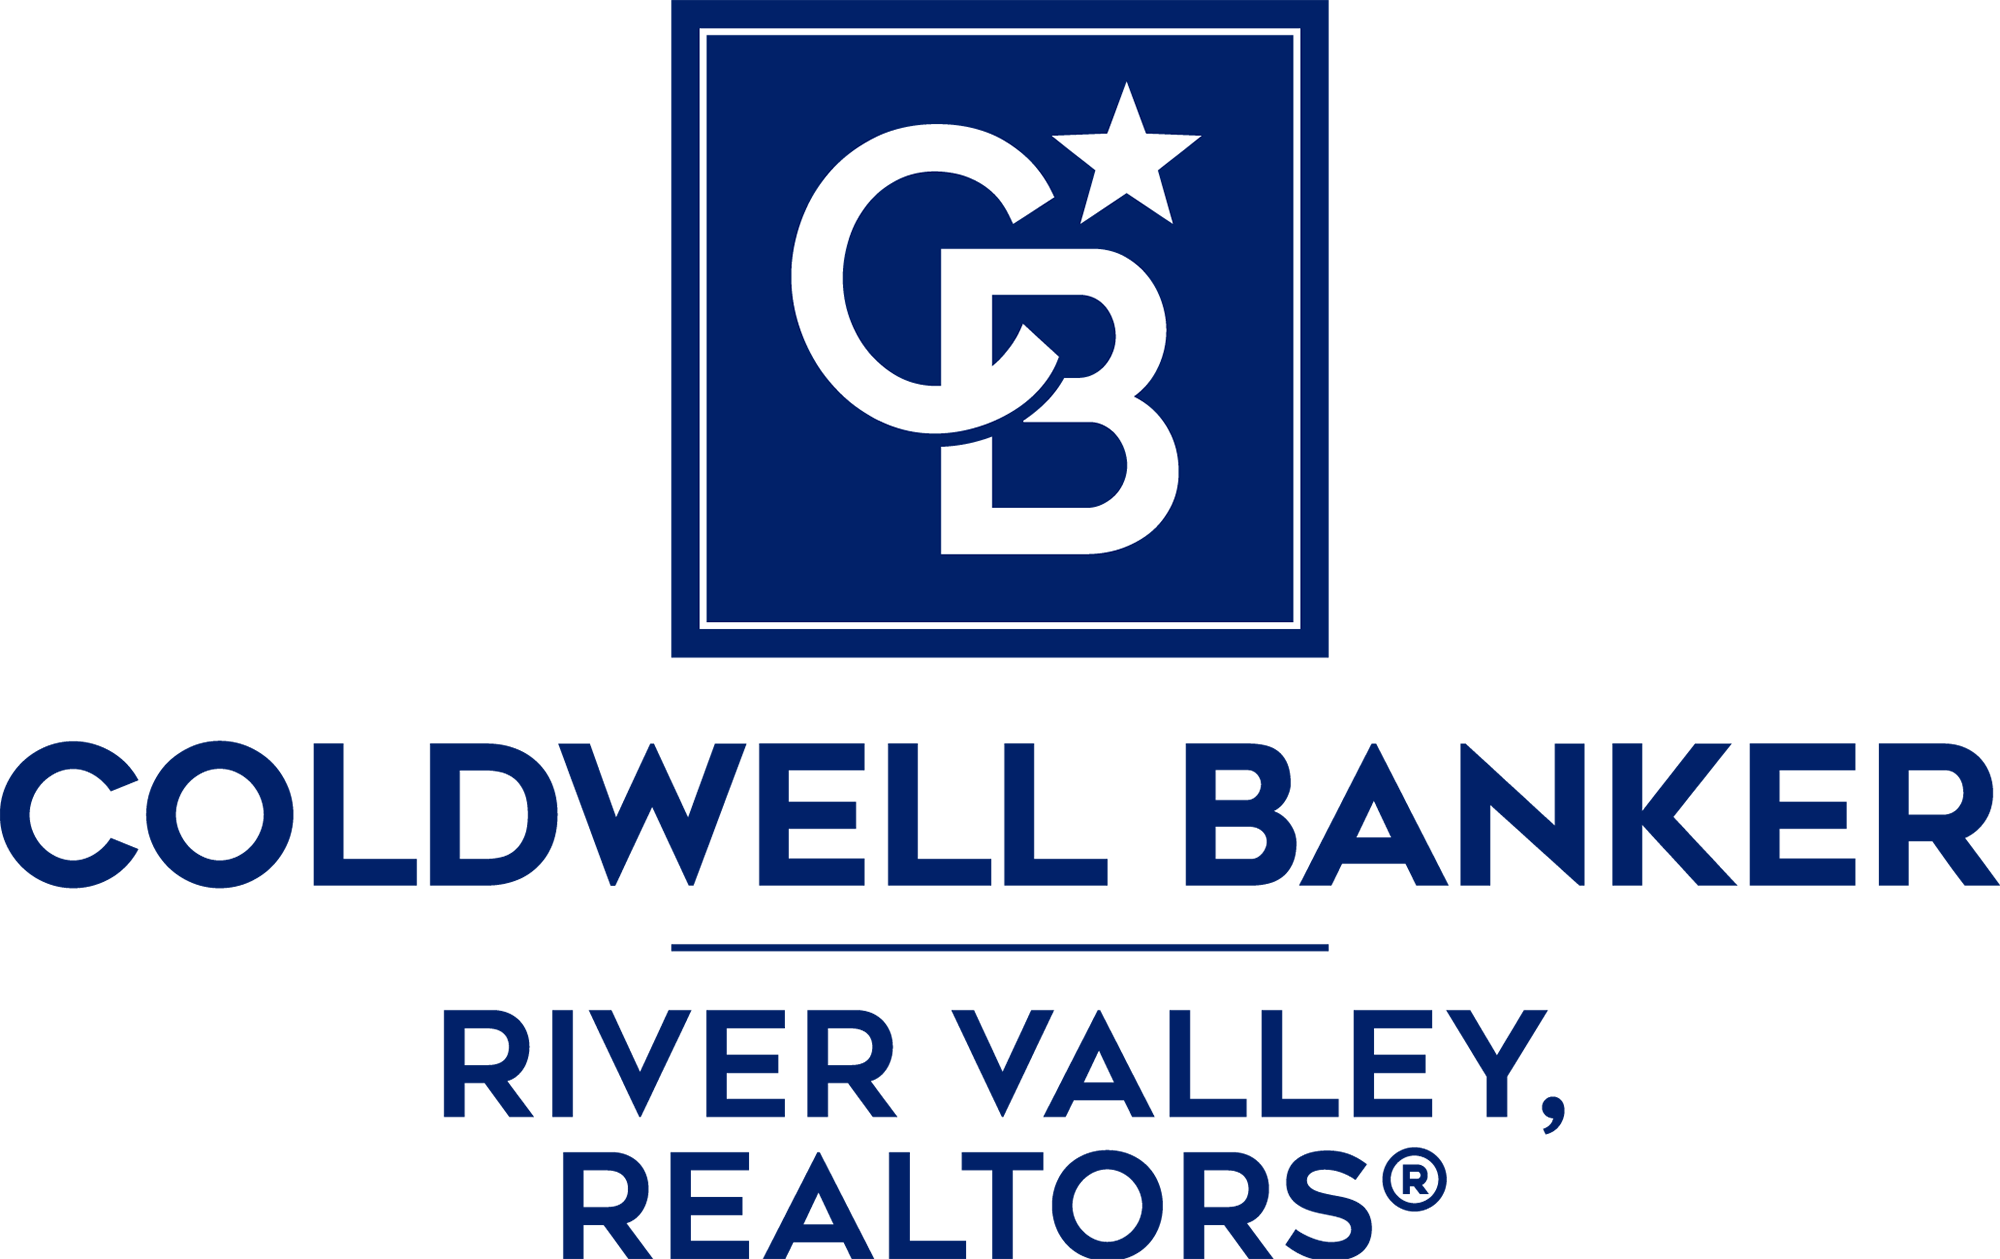 Angie Schott - Coldwell Banker River Valley Realtors Logo